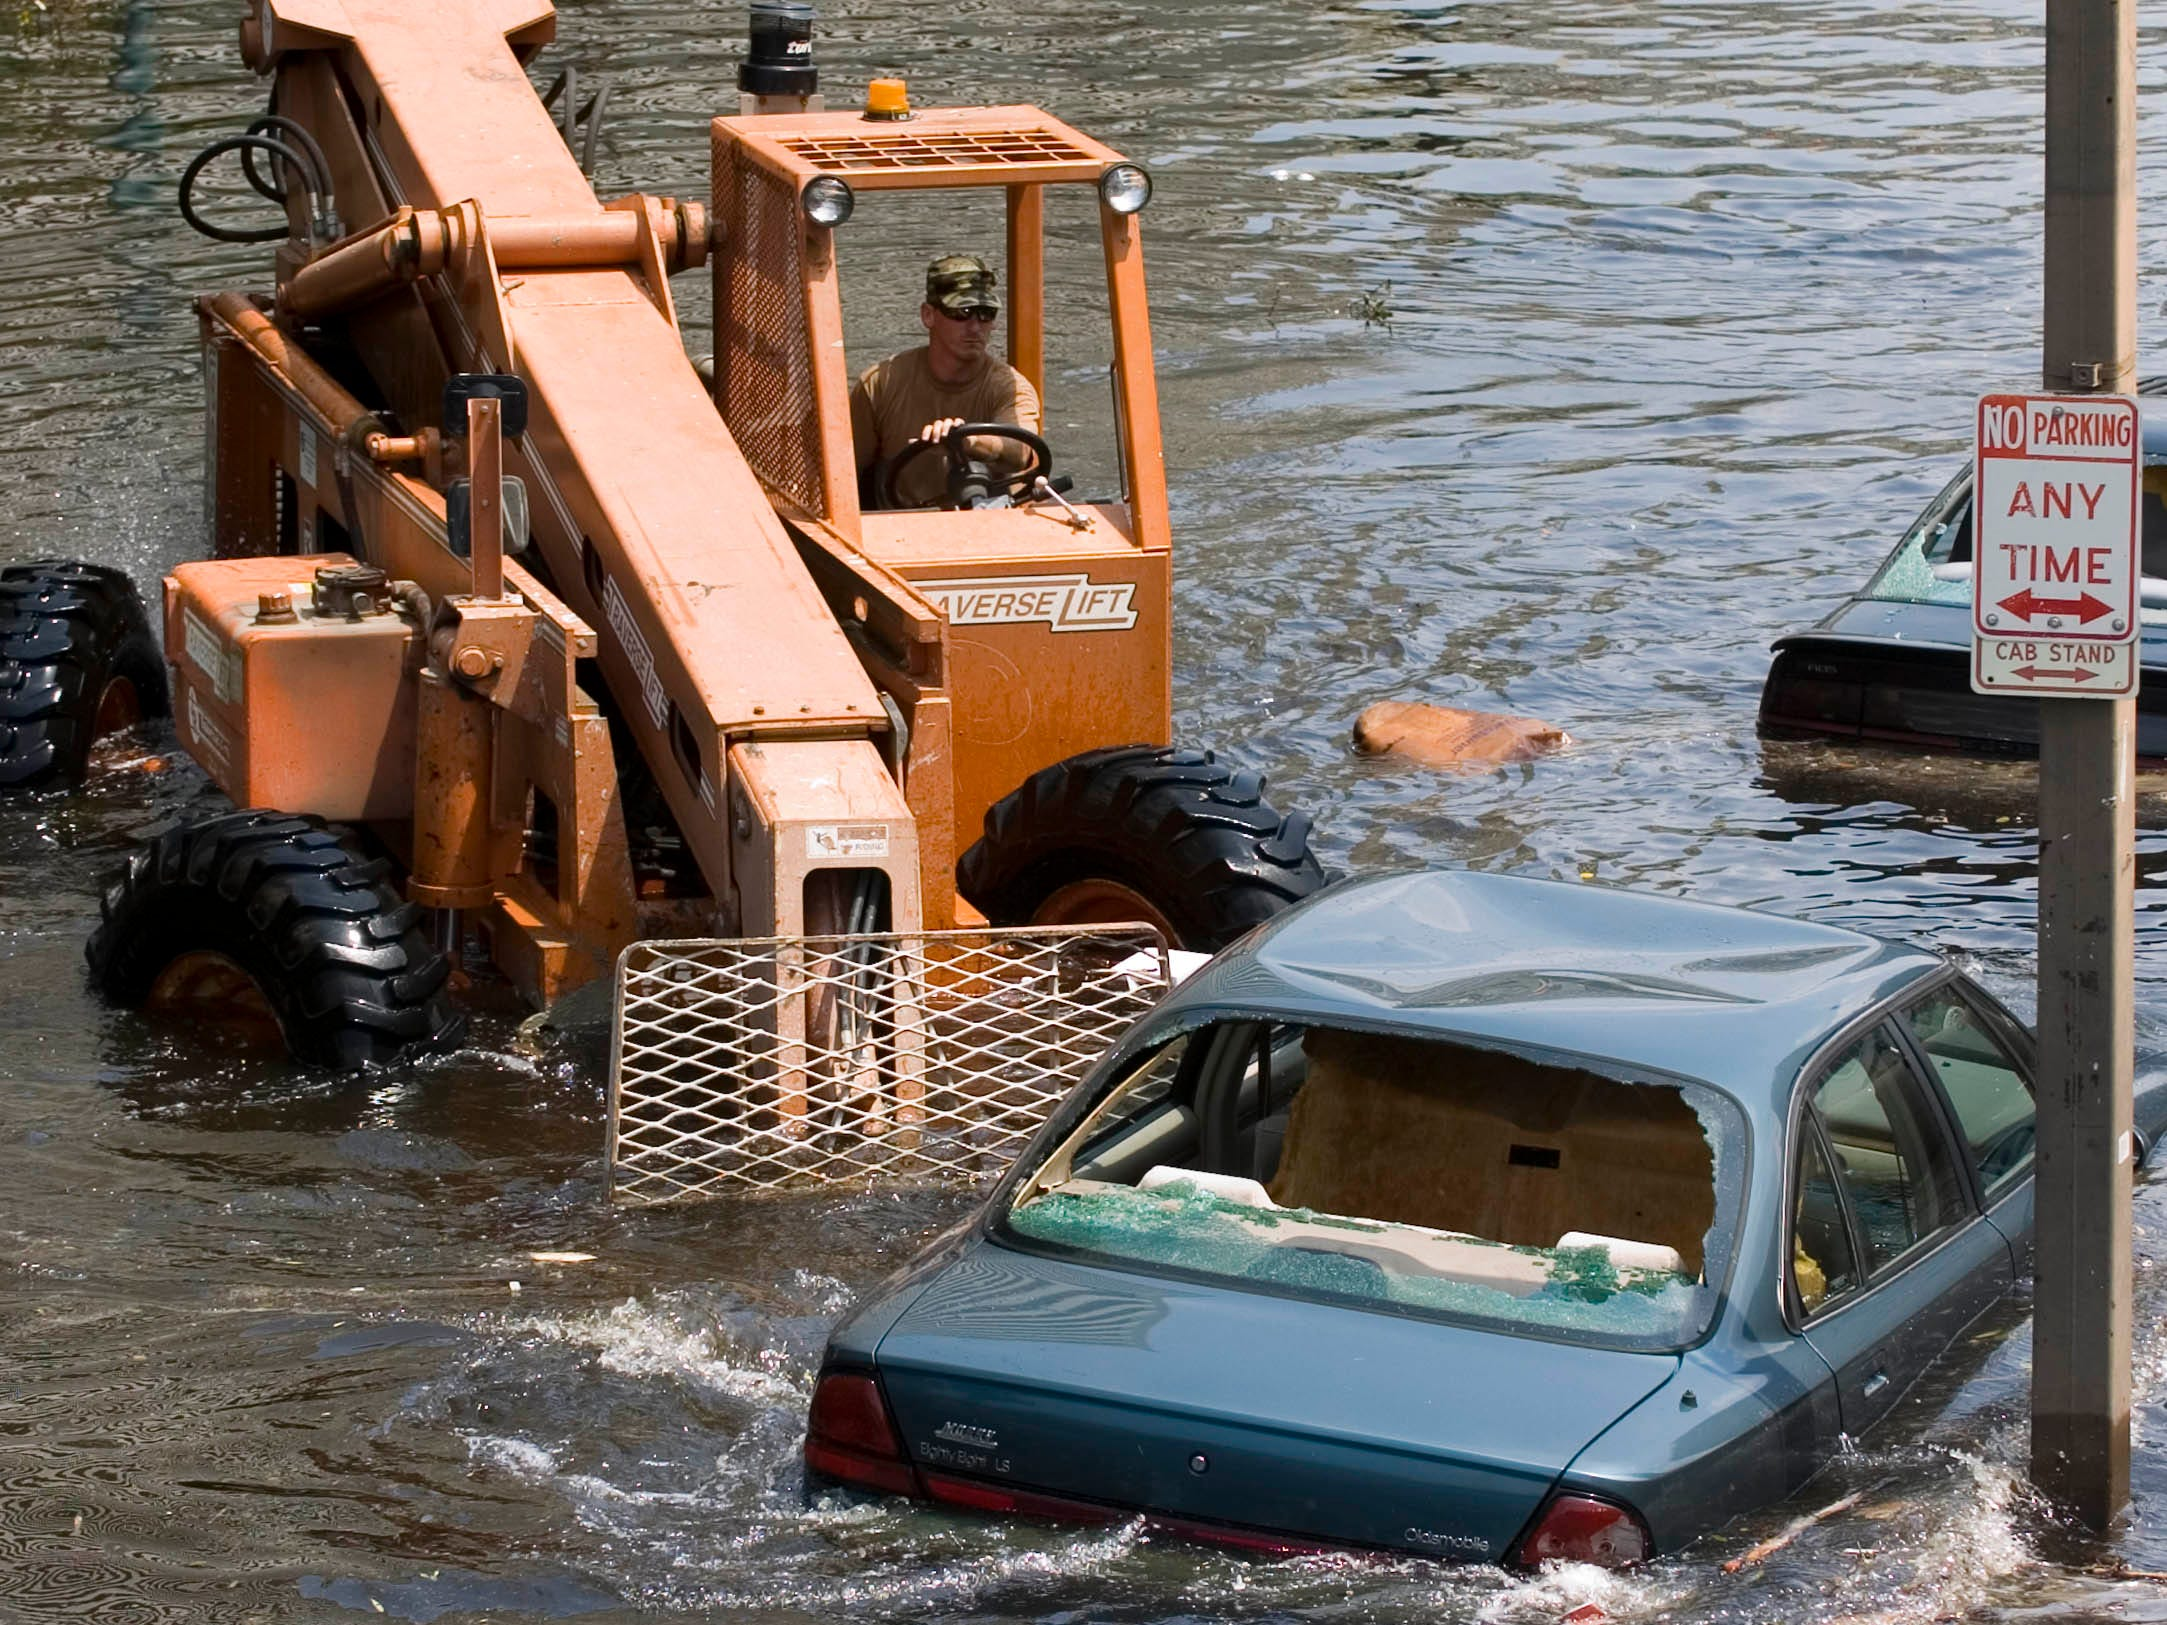 A soldier with the LA Army National Guard uses a forklift to push abandoned vehicle out of the path of rescue vehicles during the aftermath relief effort of Hurricane Katrina, August 31, 2005, in New Orleans, LA. (M. Scott Mahaskey/ Army Times)